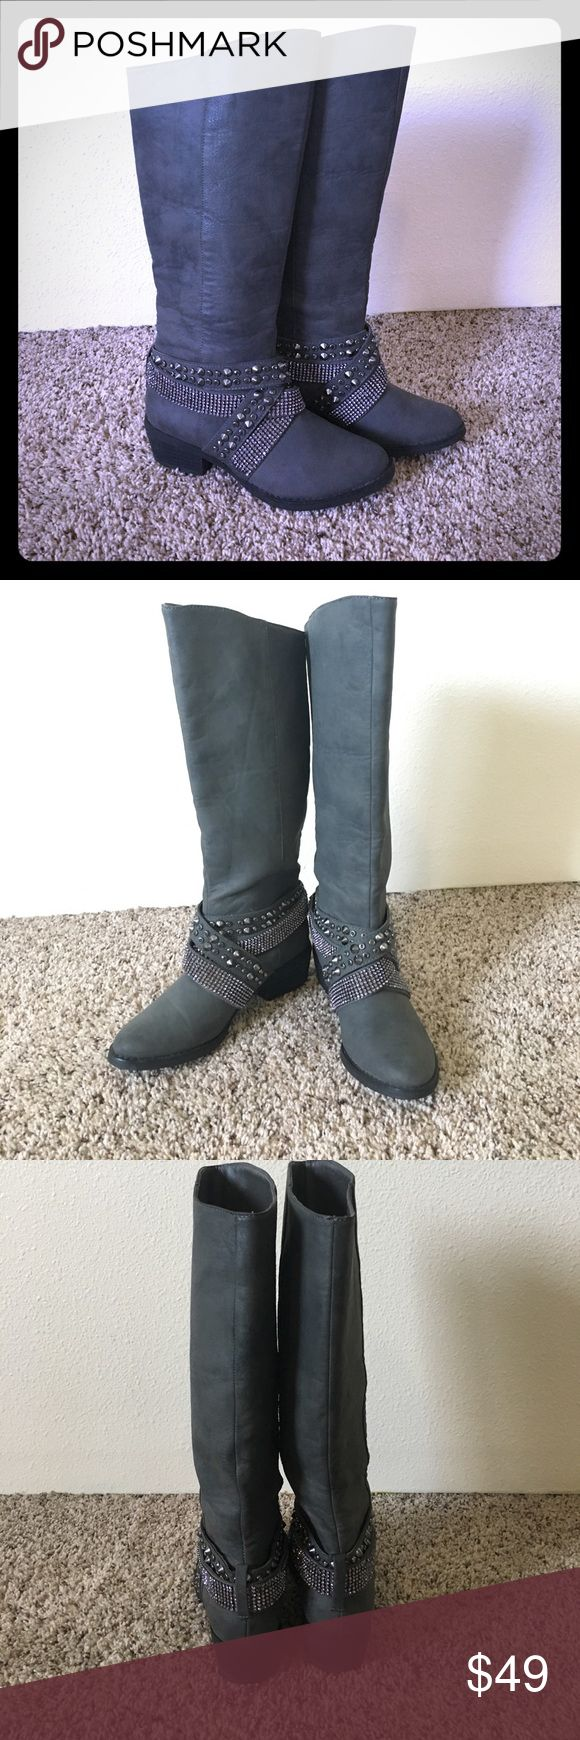 """Not Rated boots These super stylish, like new gray Not Rated boots are perfect for back to school. Only wore a couple times. These cute boots would be the perfect addition to anyone's wardrobe just in time for fall🍁 Shaft is 15"""" high and 14 1/2"""" wide. Not Rated Shoes"""